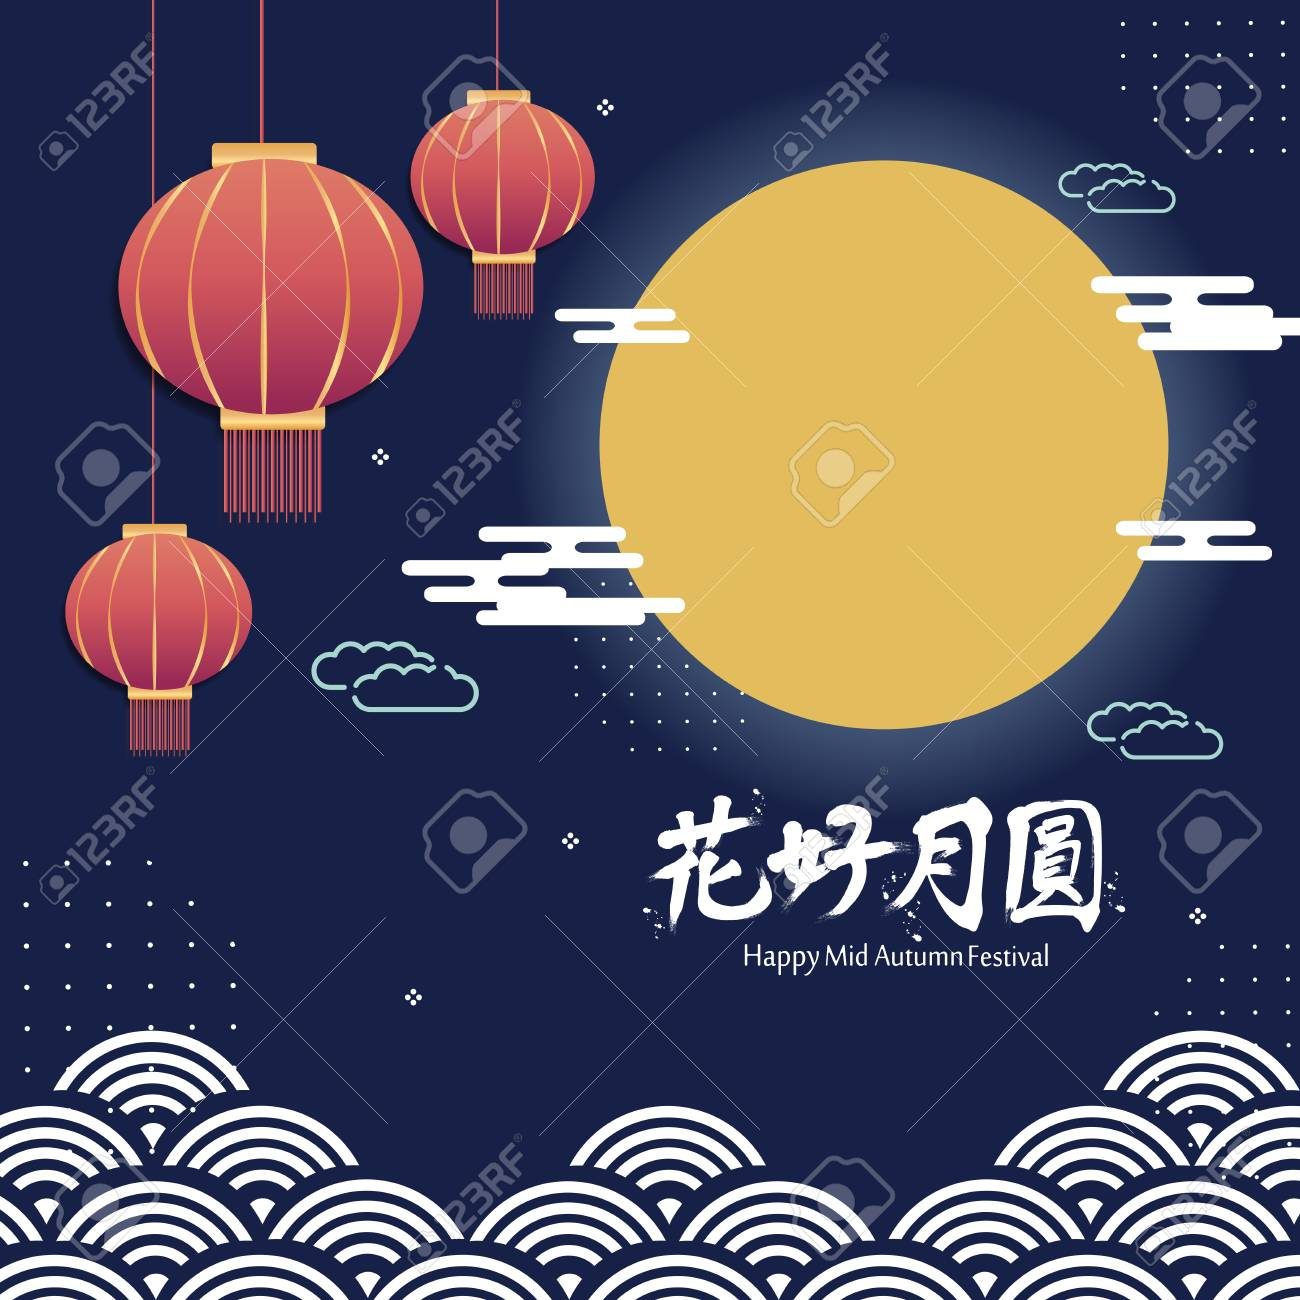 Happy Mid Autumn Festival With Beautiful Flower And Moon In The Royalty Free Cliparts Vectors And Stock Illustration Image 107916500